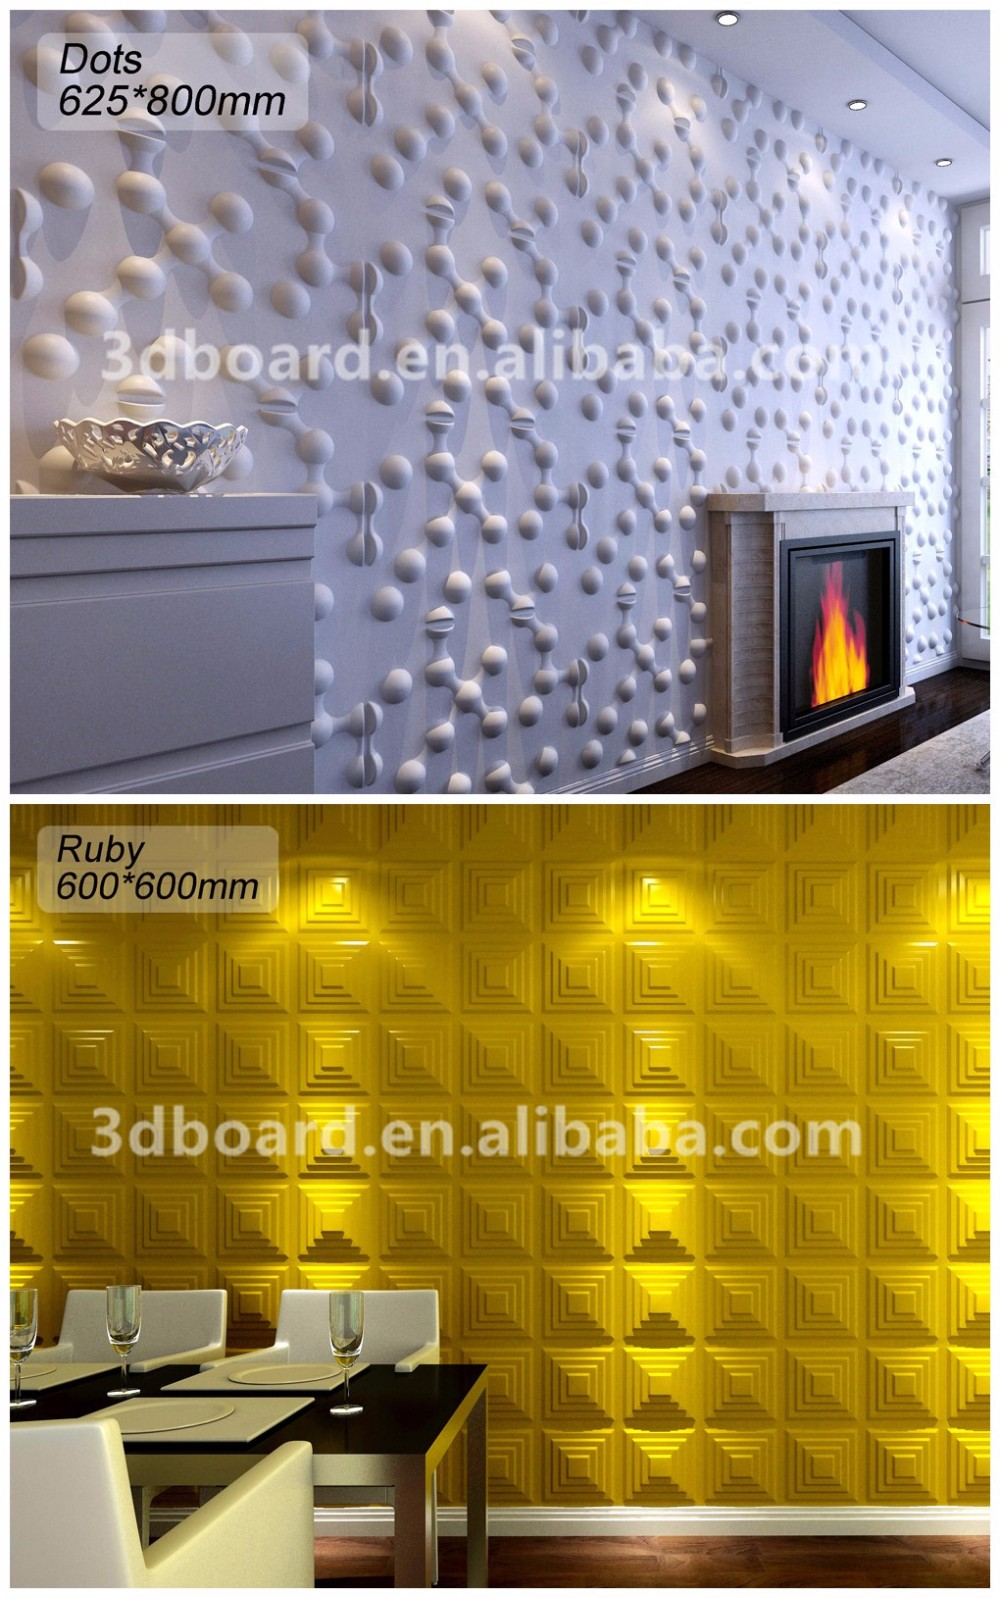 Interior Decoration Bamboo Wallpapers Fibre Decor Wall Coating 3D Panels